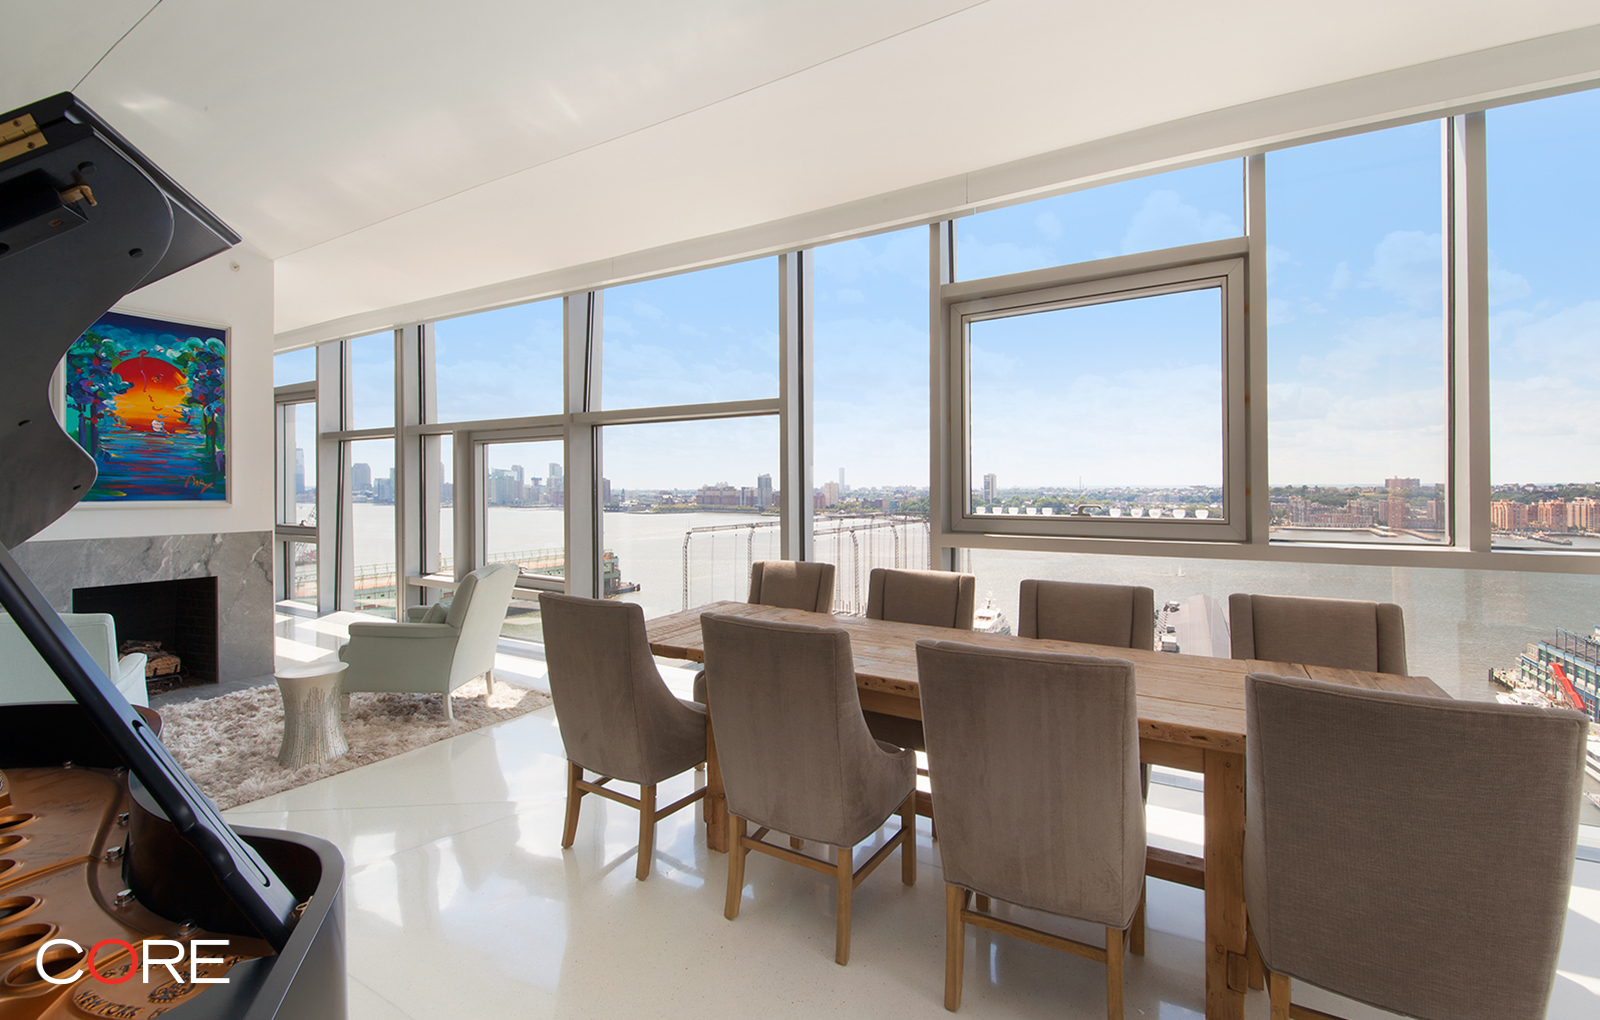 Kelsey Grammer Lists Chelsea Condo In Jean Nouvelu0027s 100 Eleventh Avenue For  $9.75M